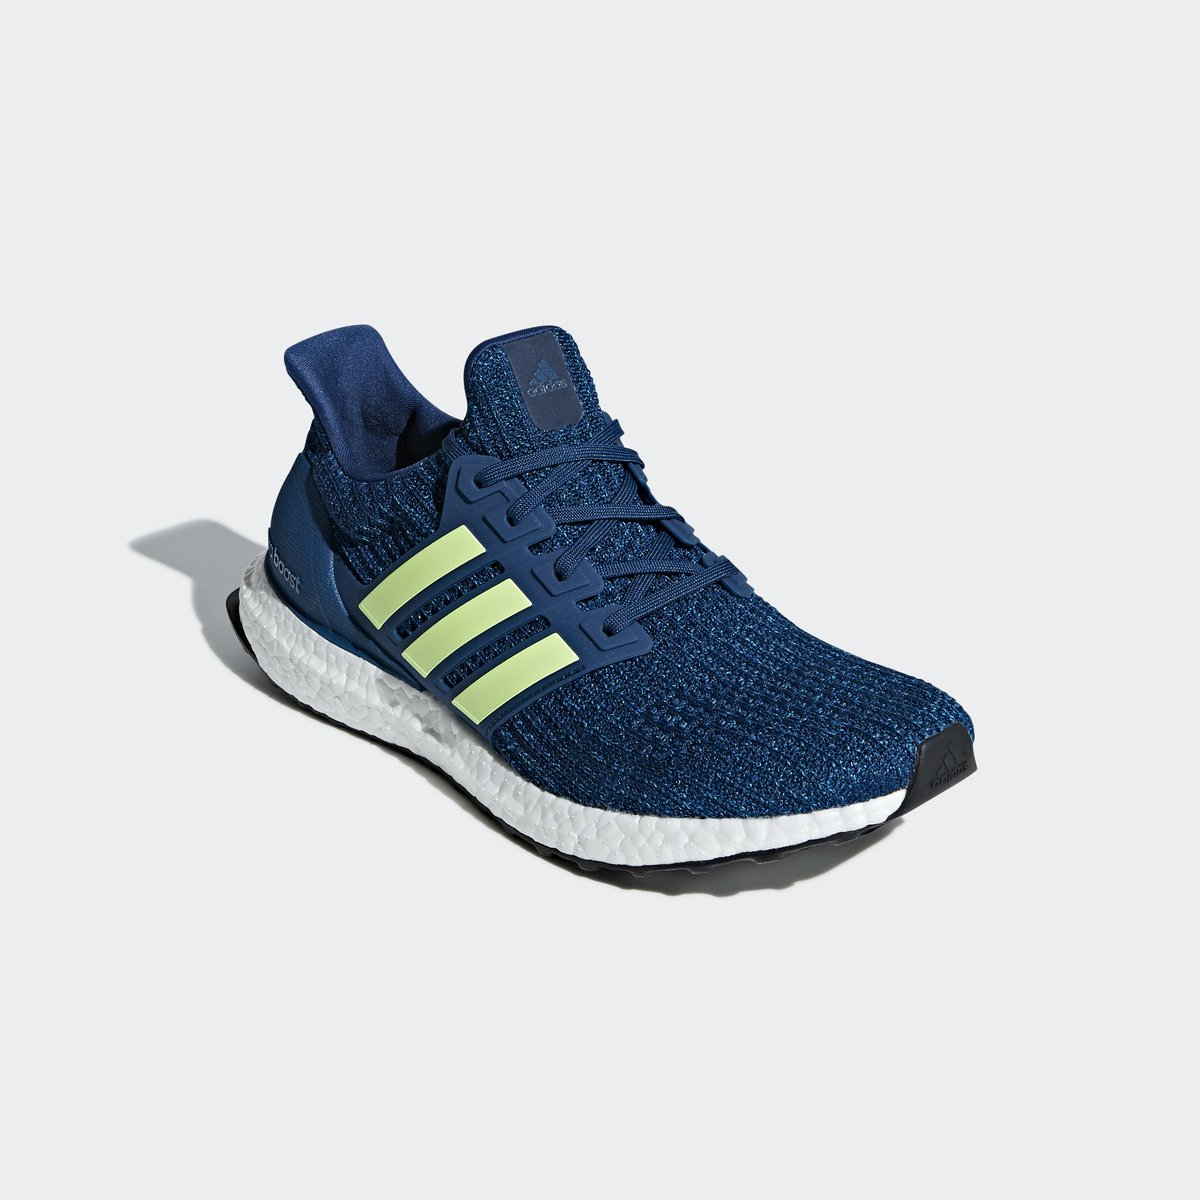 f977044d9 Sizes restocked on  FinishLine. adidas Ultra Boost 4.0 Marine. Retail  180.  Now  90. Use code BLOOM10 in cart. —  https   bit.ly 2JjB8Bv   adpic.twitter.com  ...